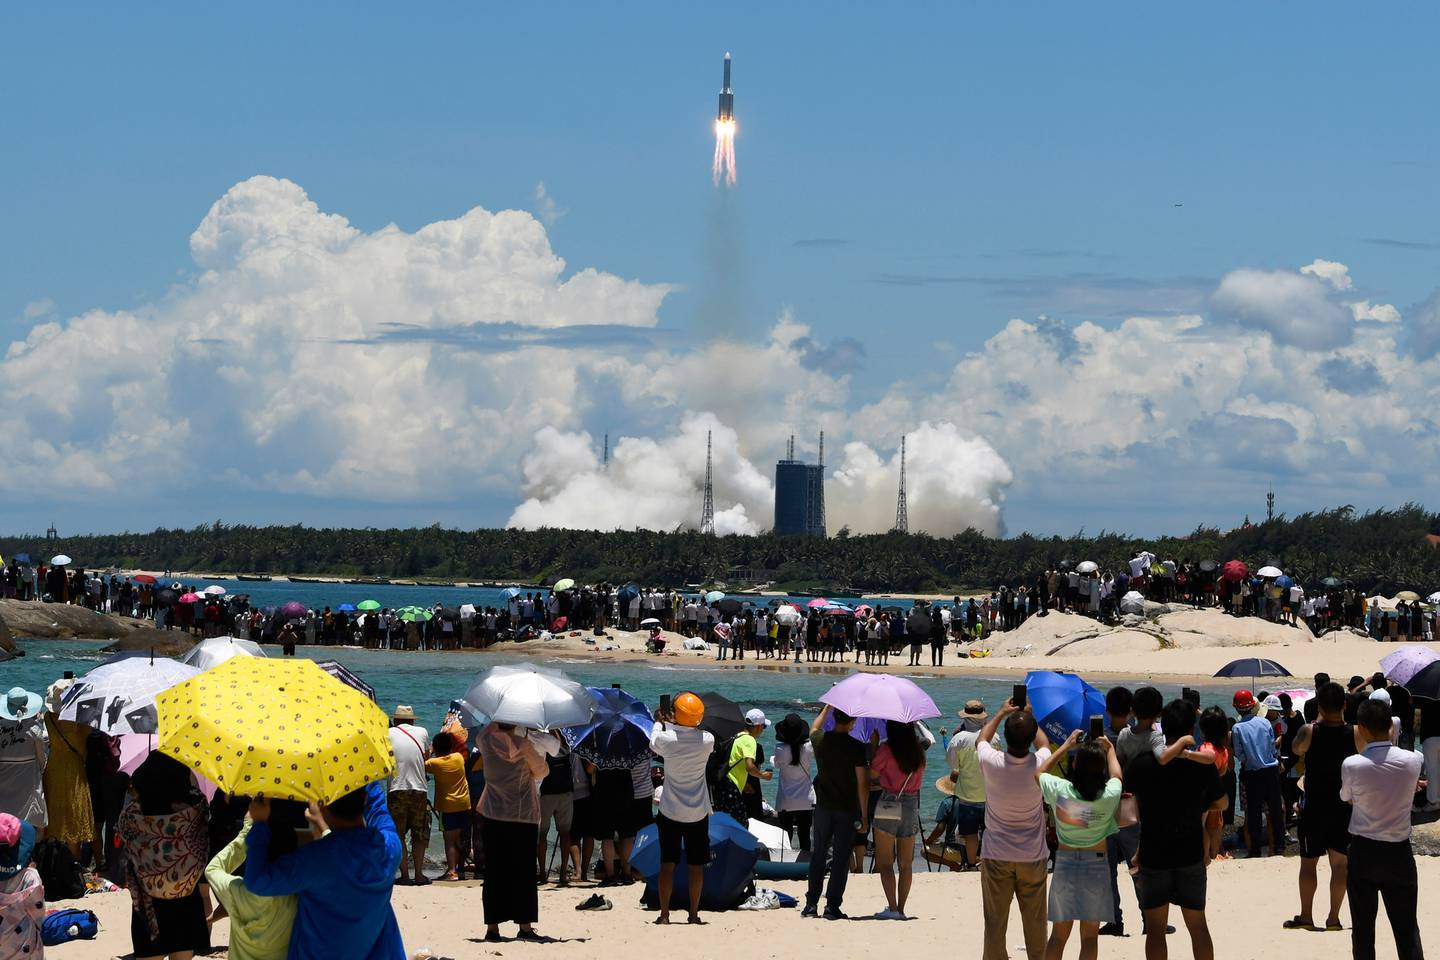 Spectators watch as a Long March-5 rocket carrying the Tianwen-1 Mars probe lifts off from the Wenchang Space Launch Center in southern China's Hainan Province. Photo /AP